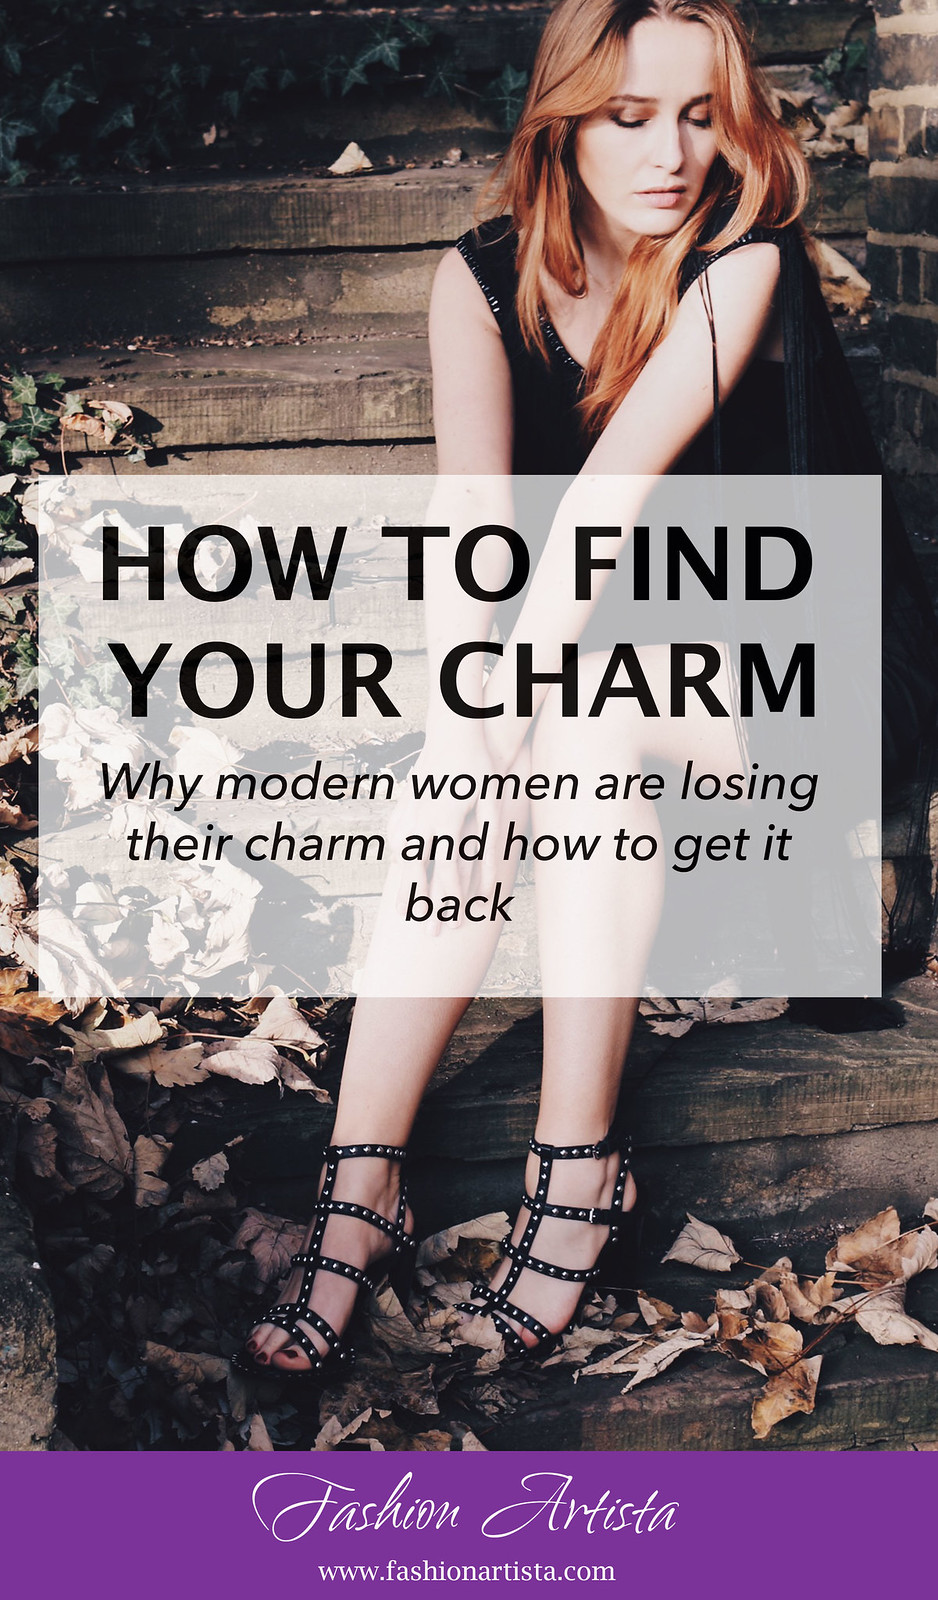 How to find your charm - www.fashionartista.com feat. Laurel dress and ASH footwear